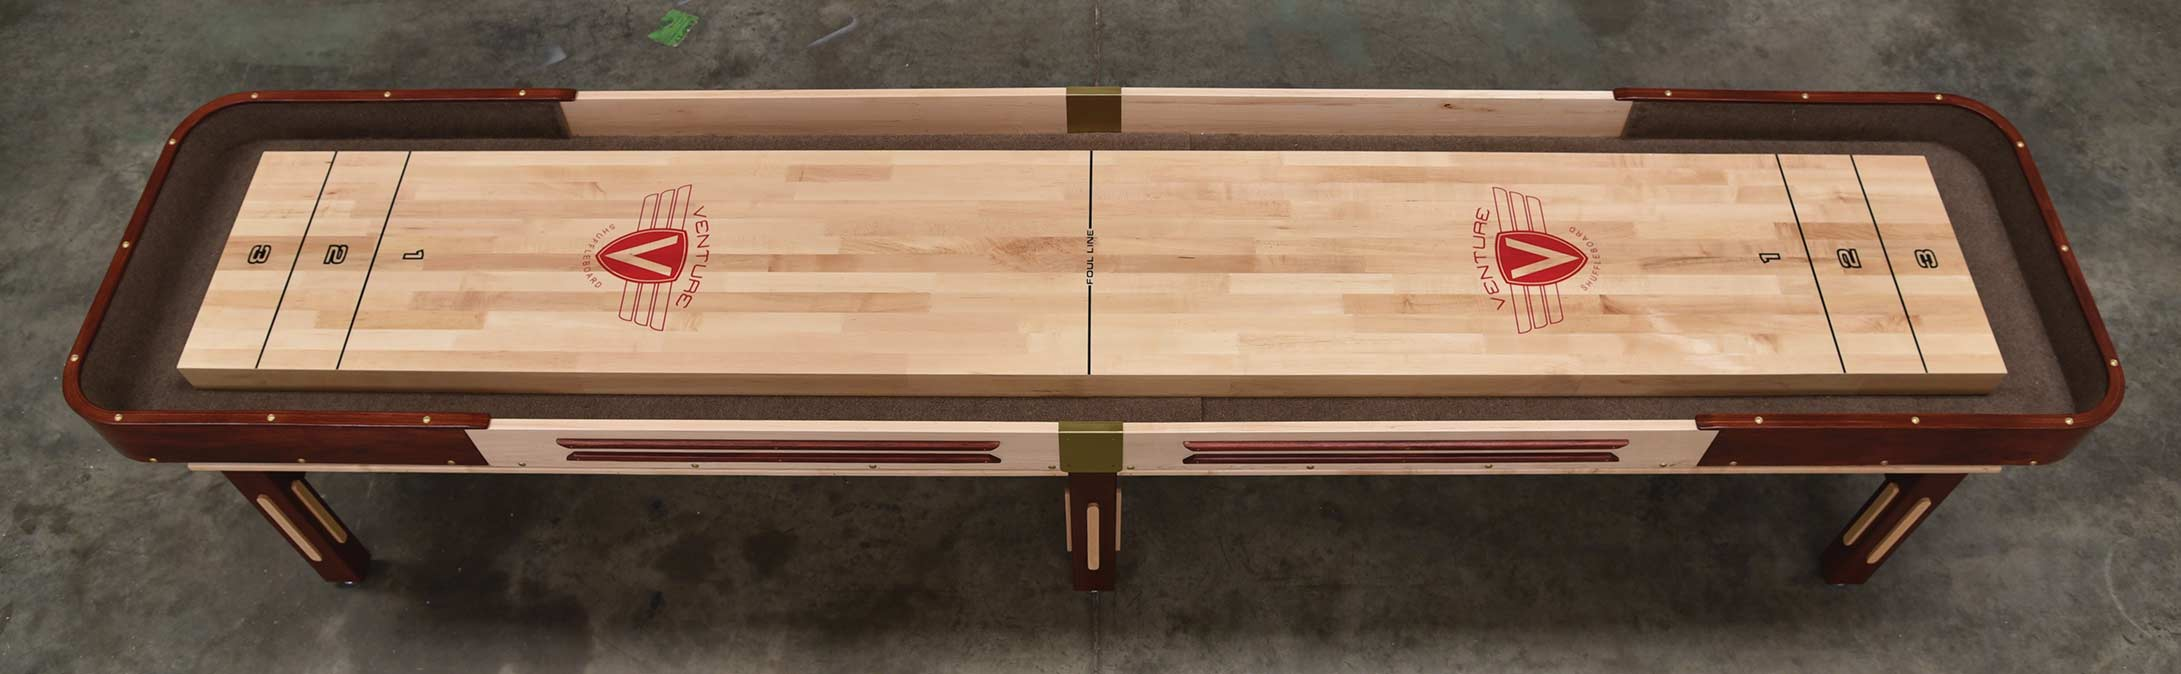 Grand Shuffleboard - Blatt Billiards